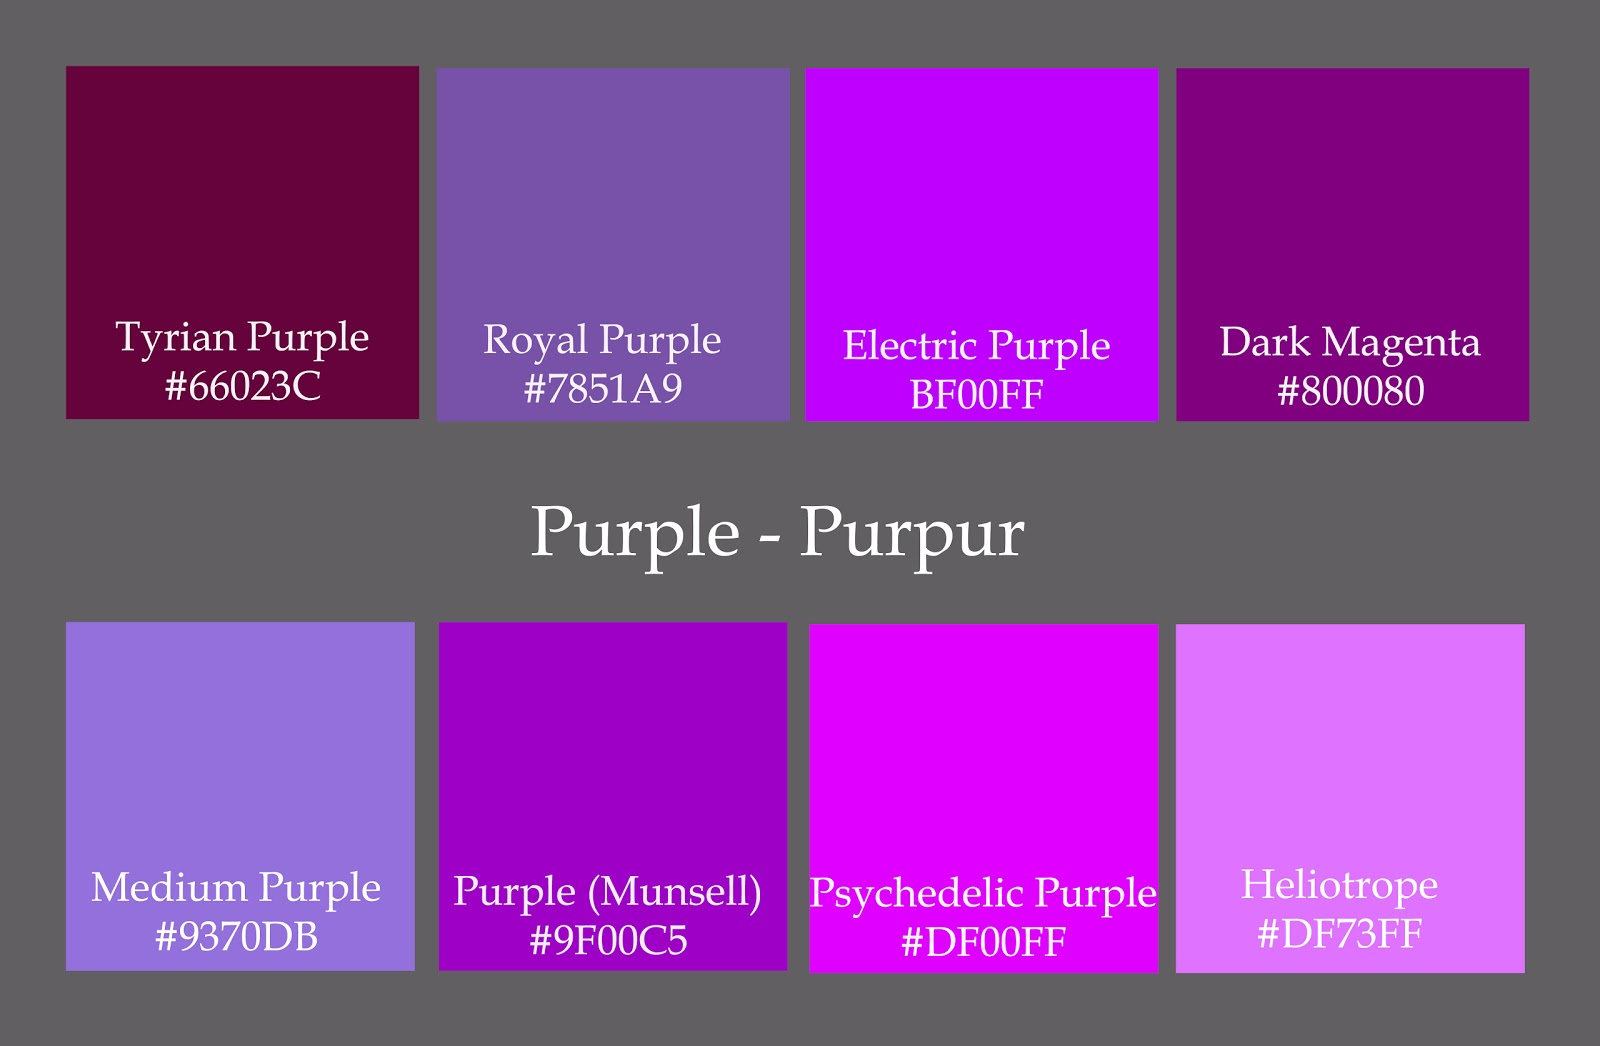 Asian Paints Color Code http://nordljusfollowyourstar.blogspot.com/2011/05/purple-green.html